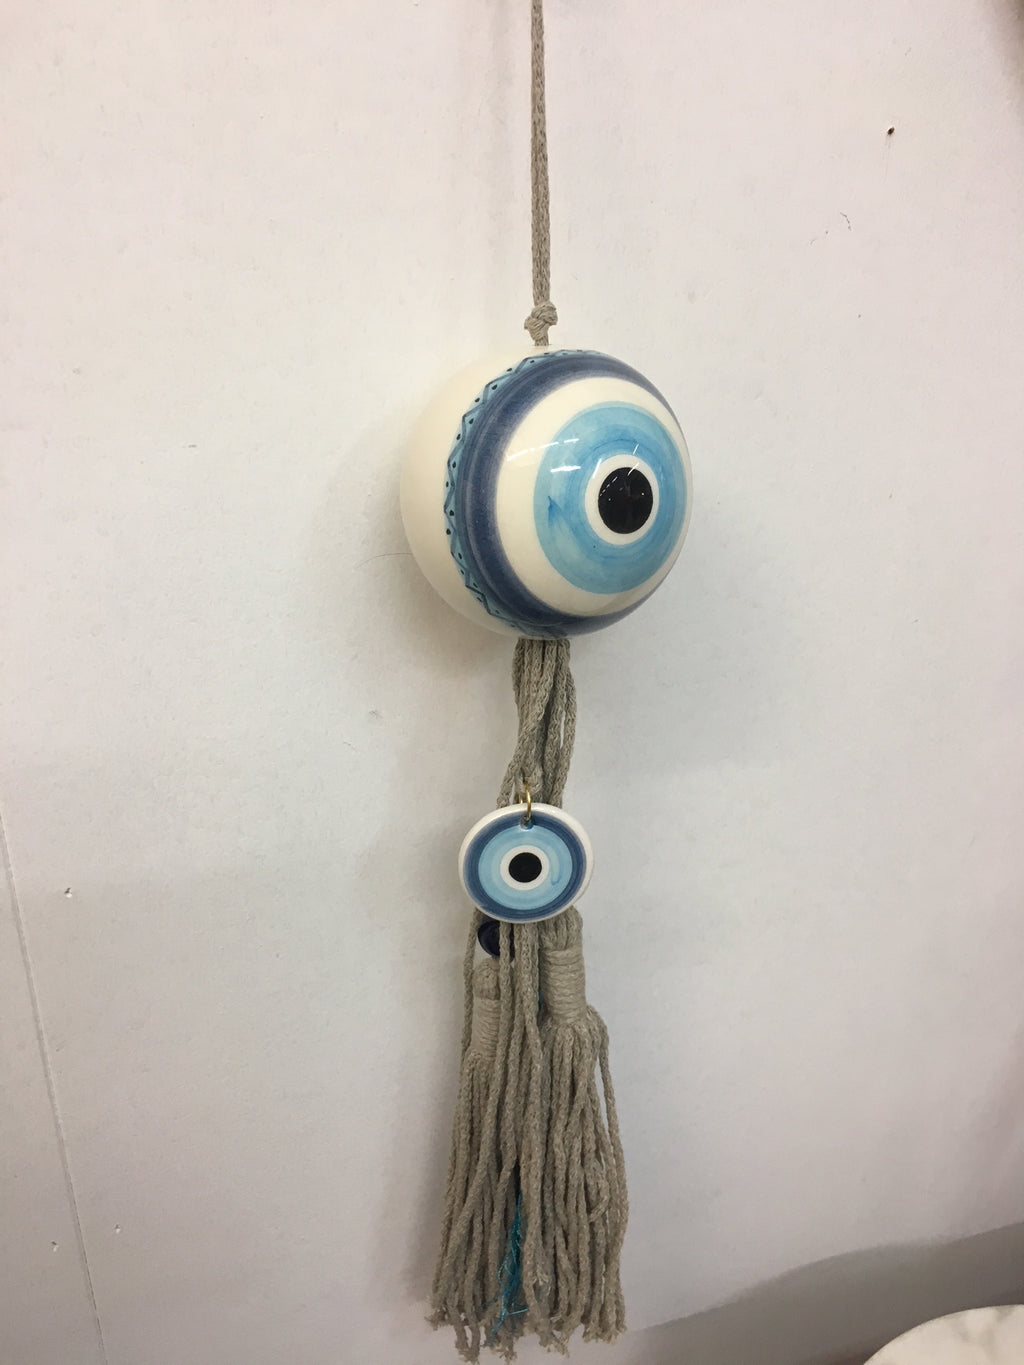 Hanging Decorative Ball with Hand Painted Eye